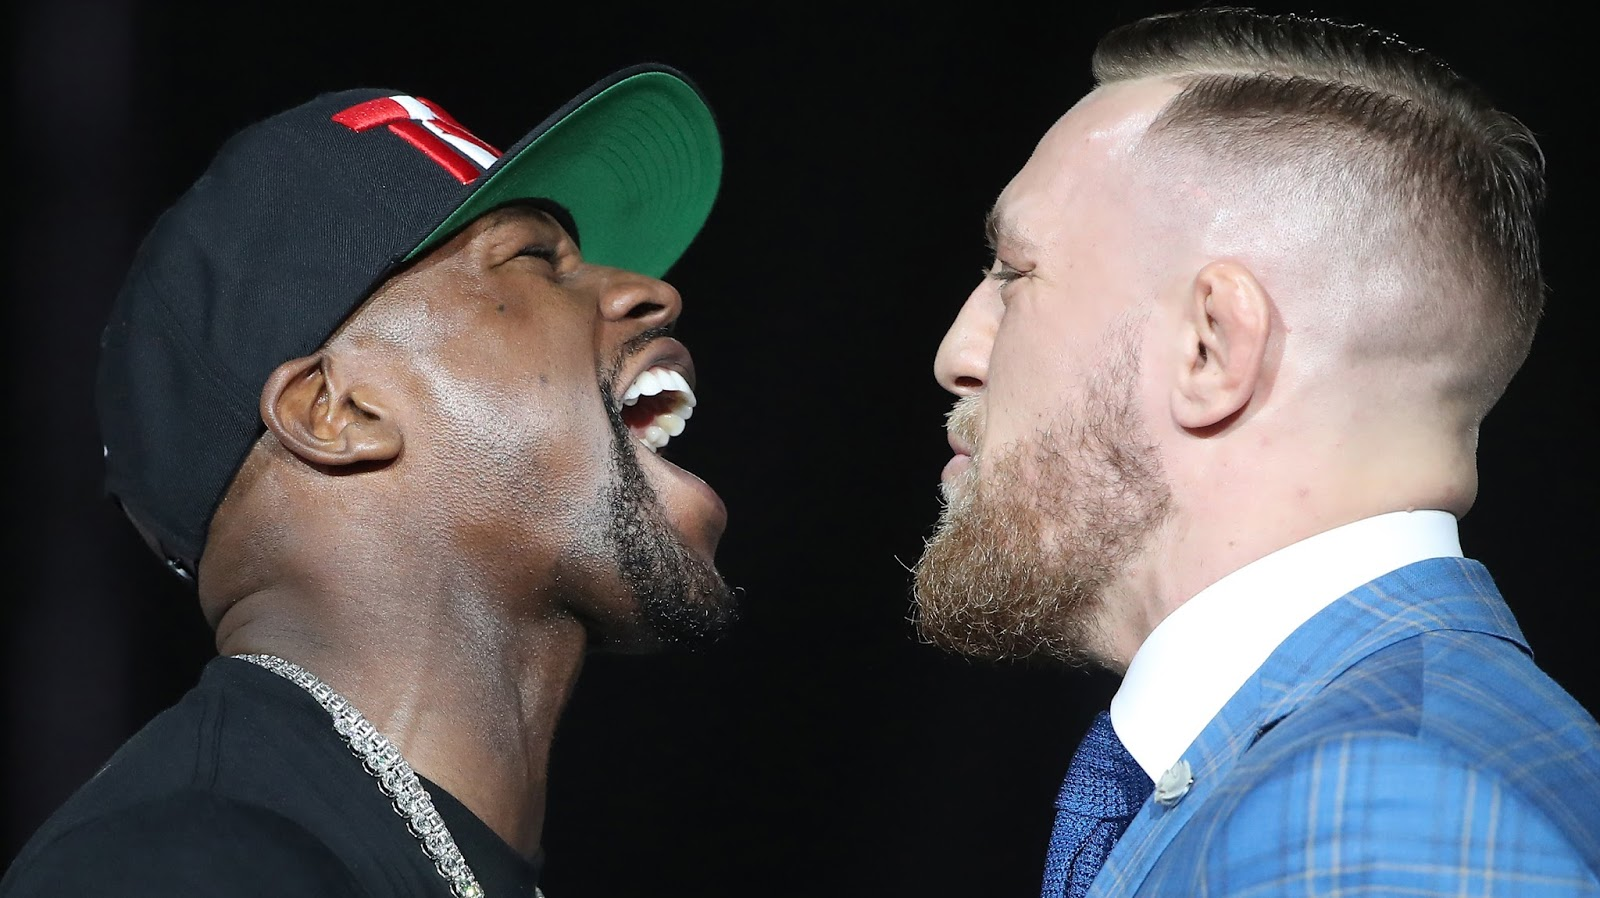 FLOYD MAYWEATHER VS. CONOR MCGREGOR 17